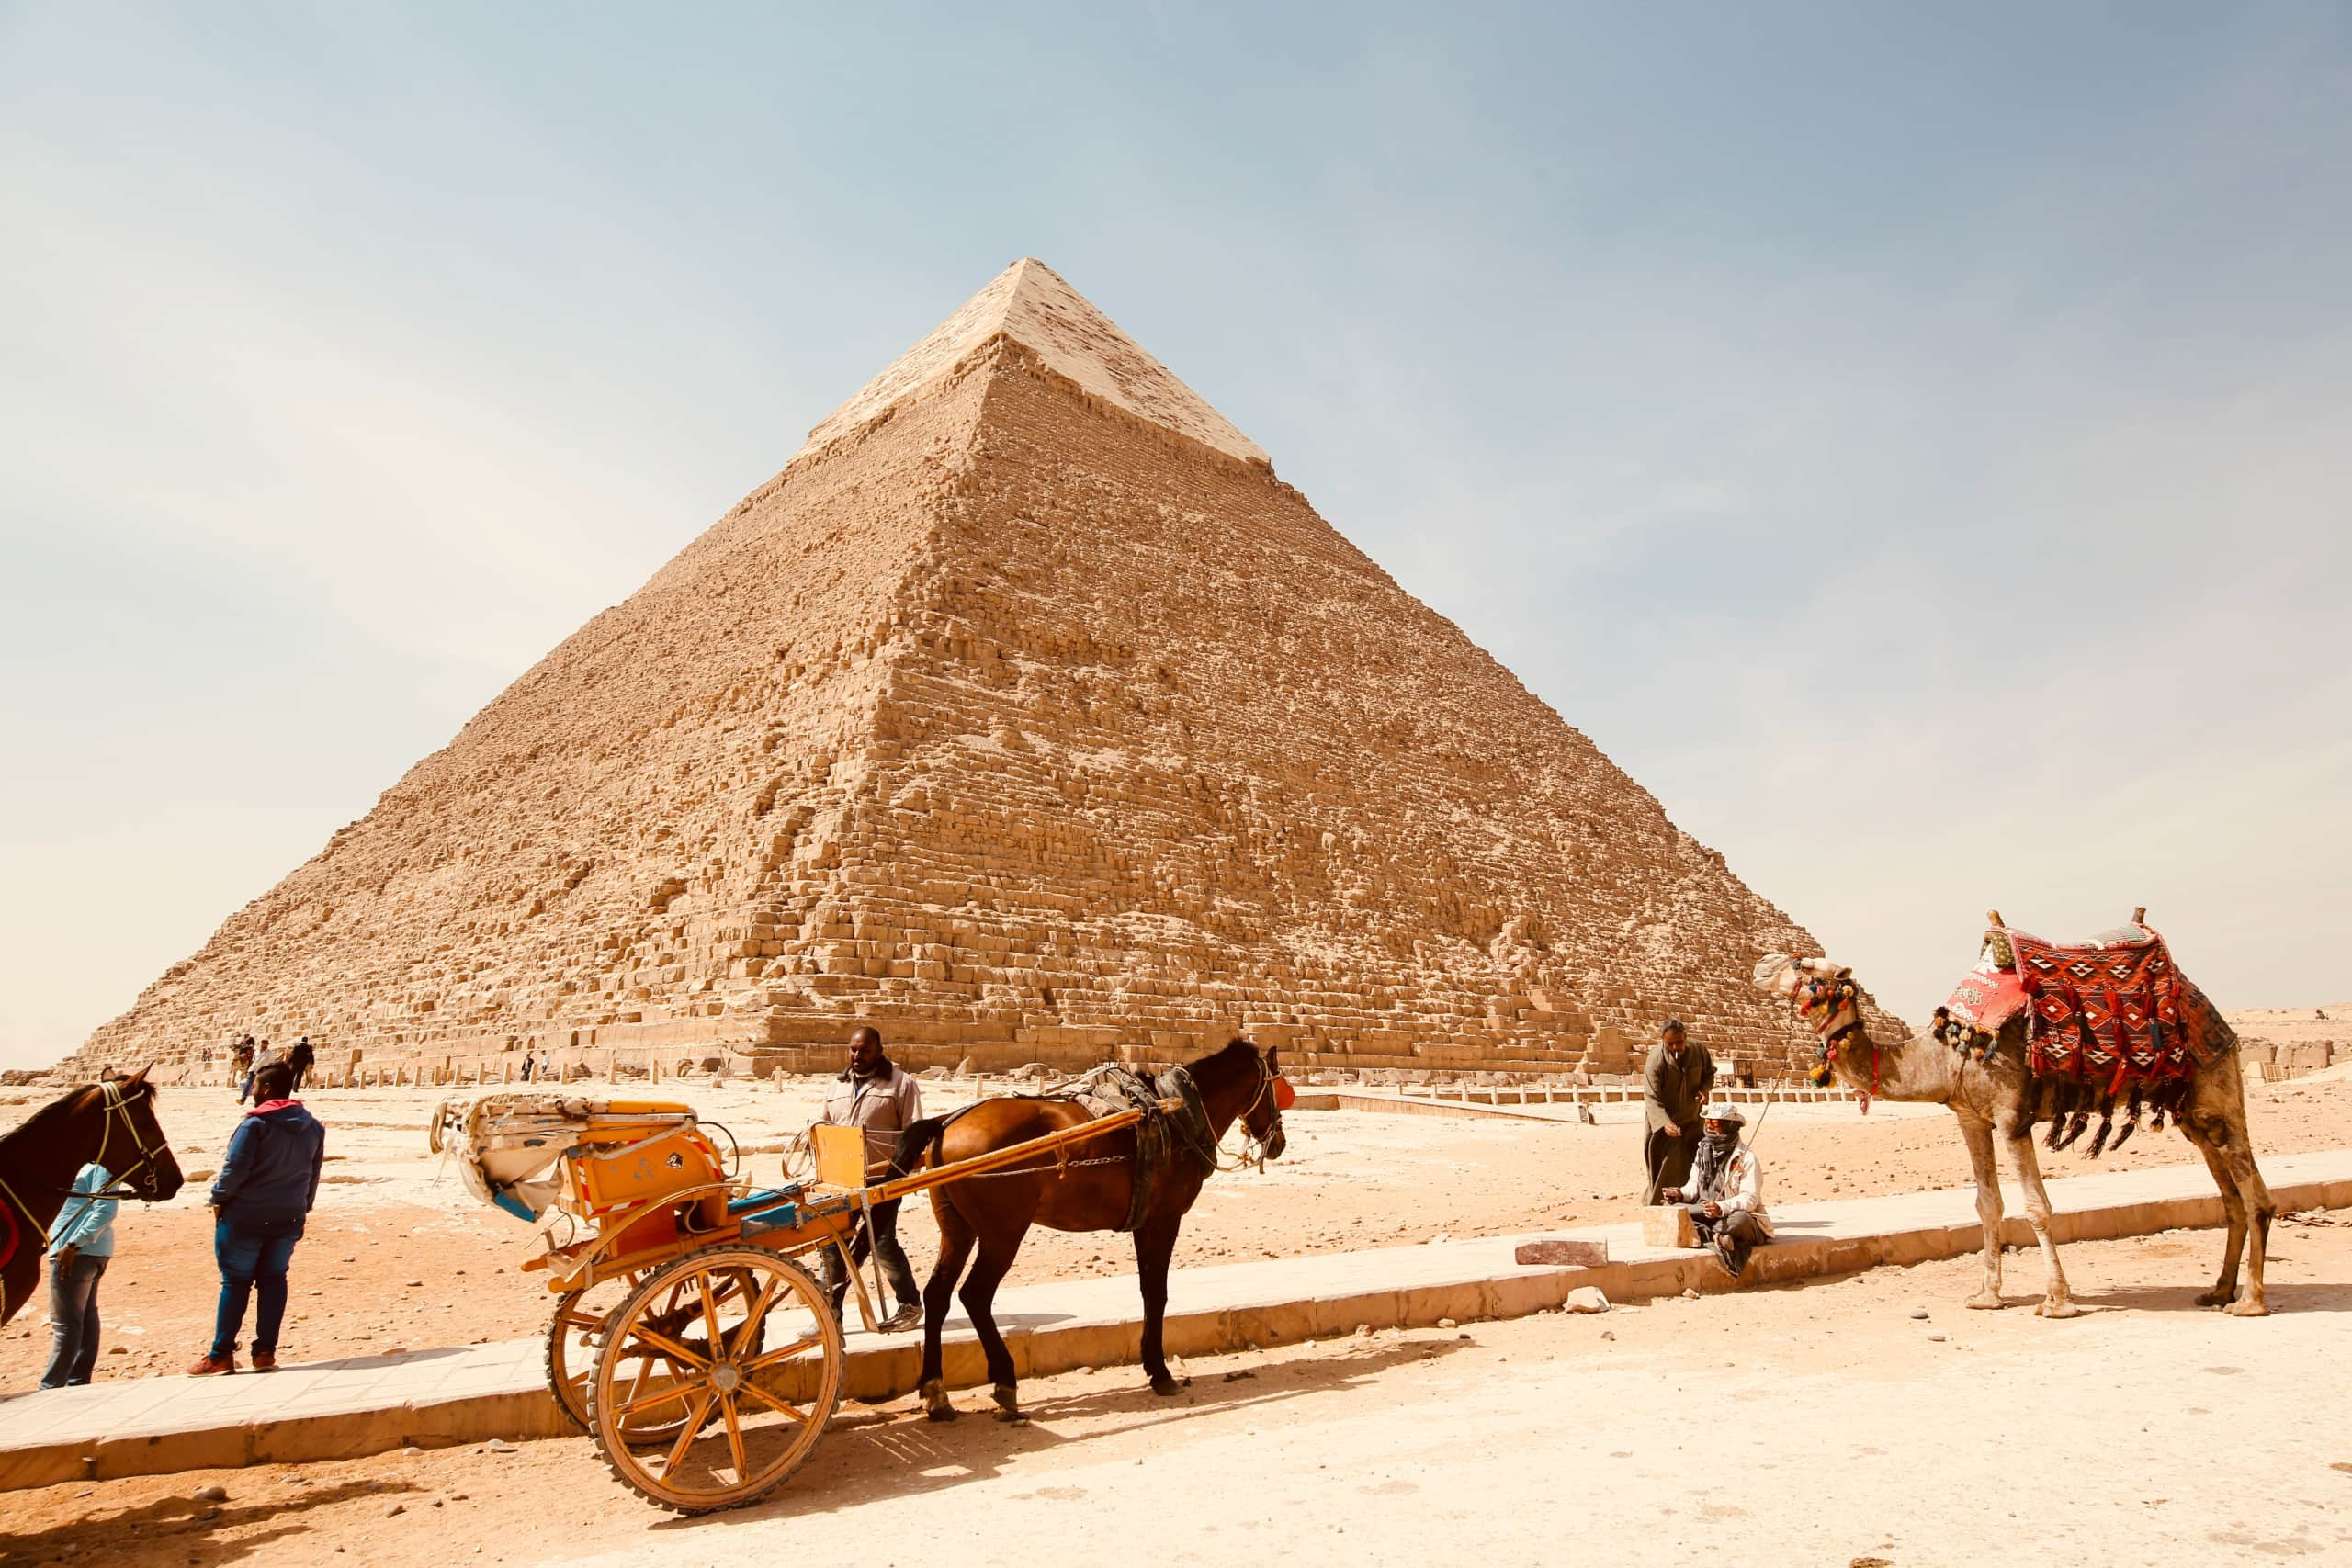 Egyptian pyramids: because Egypt is at the center of a lot of cannabis history.